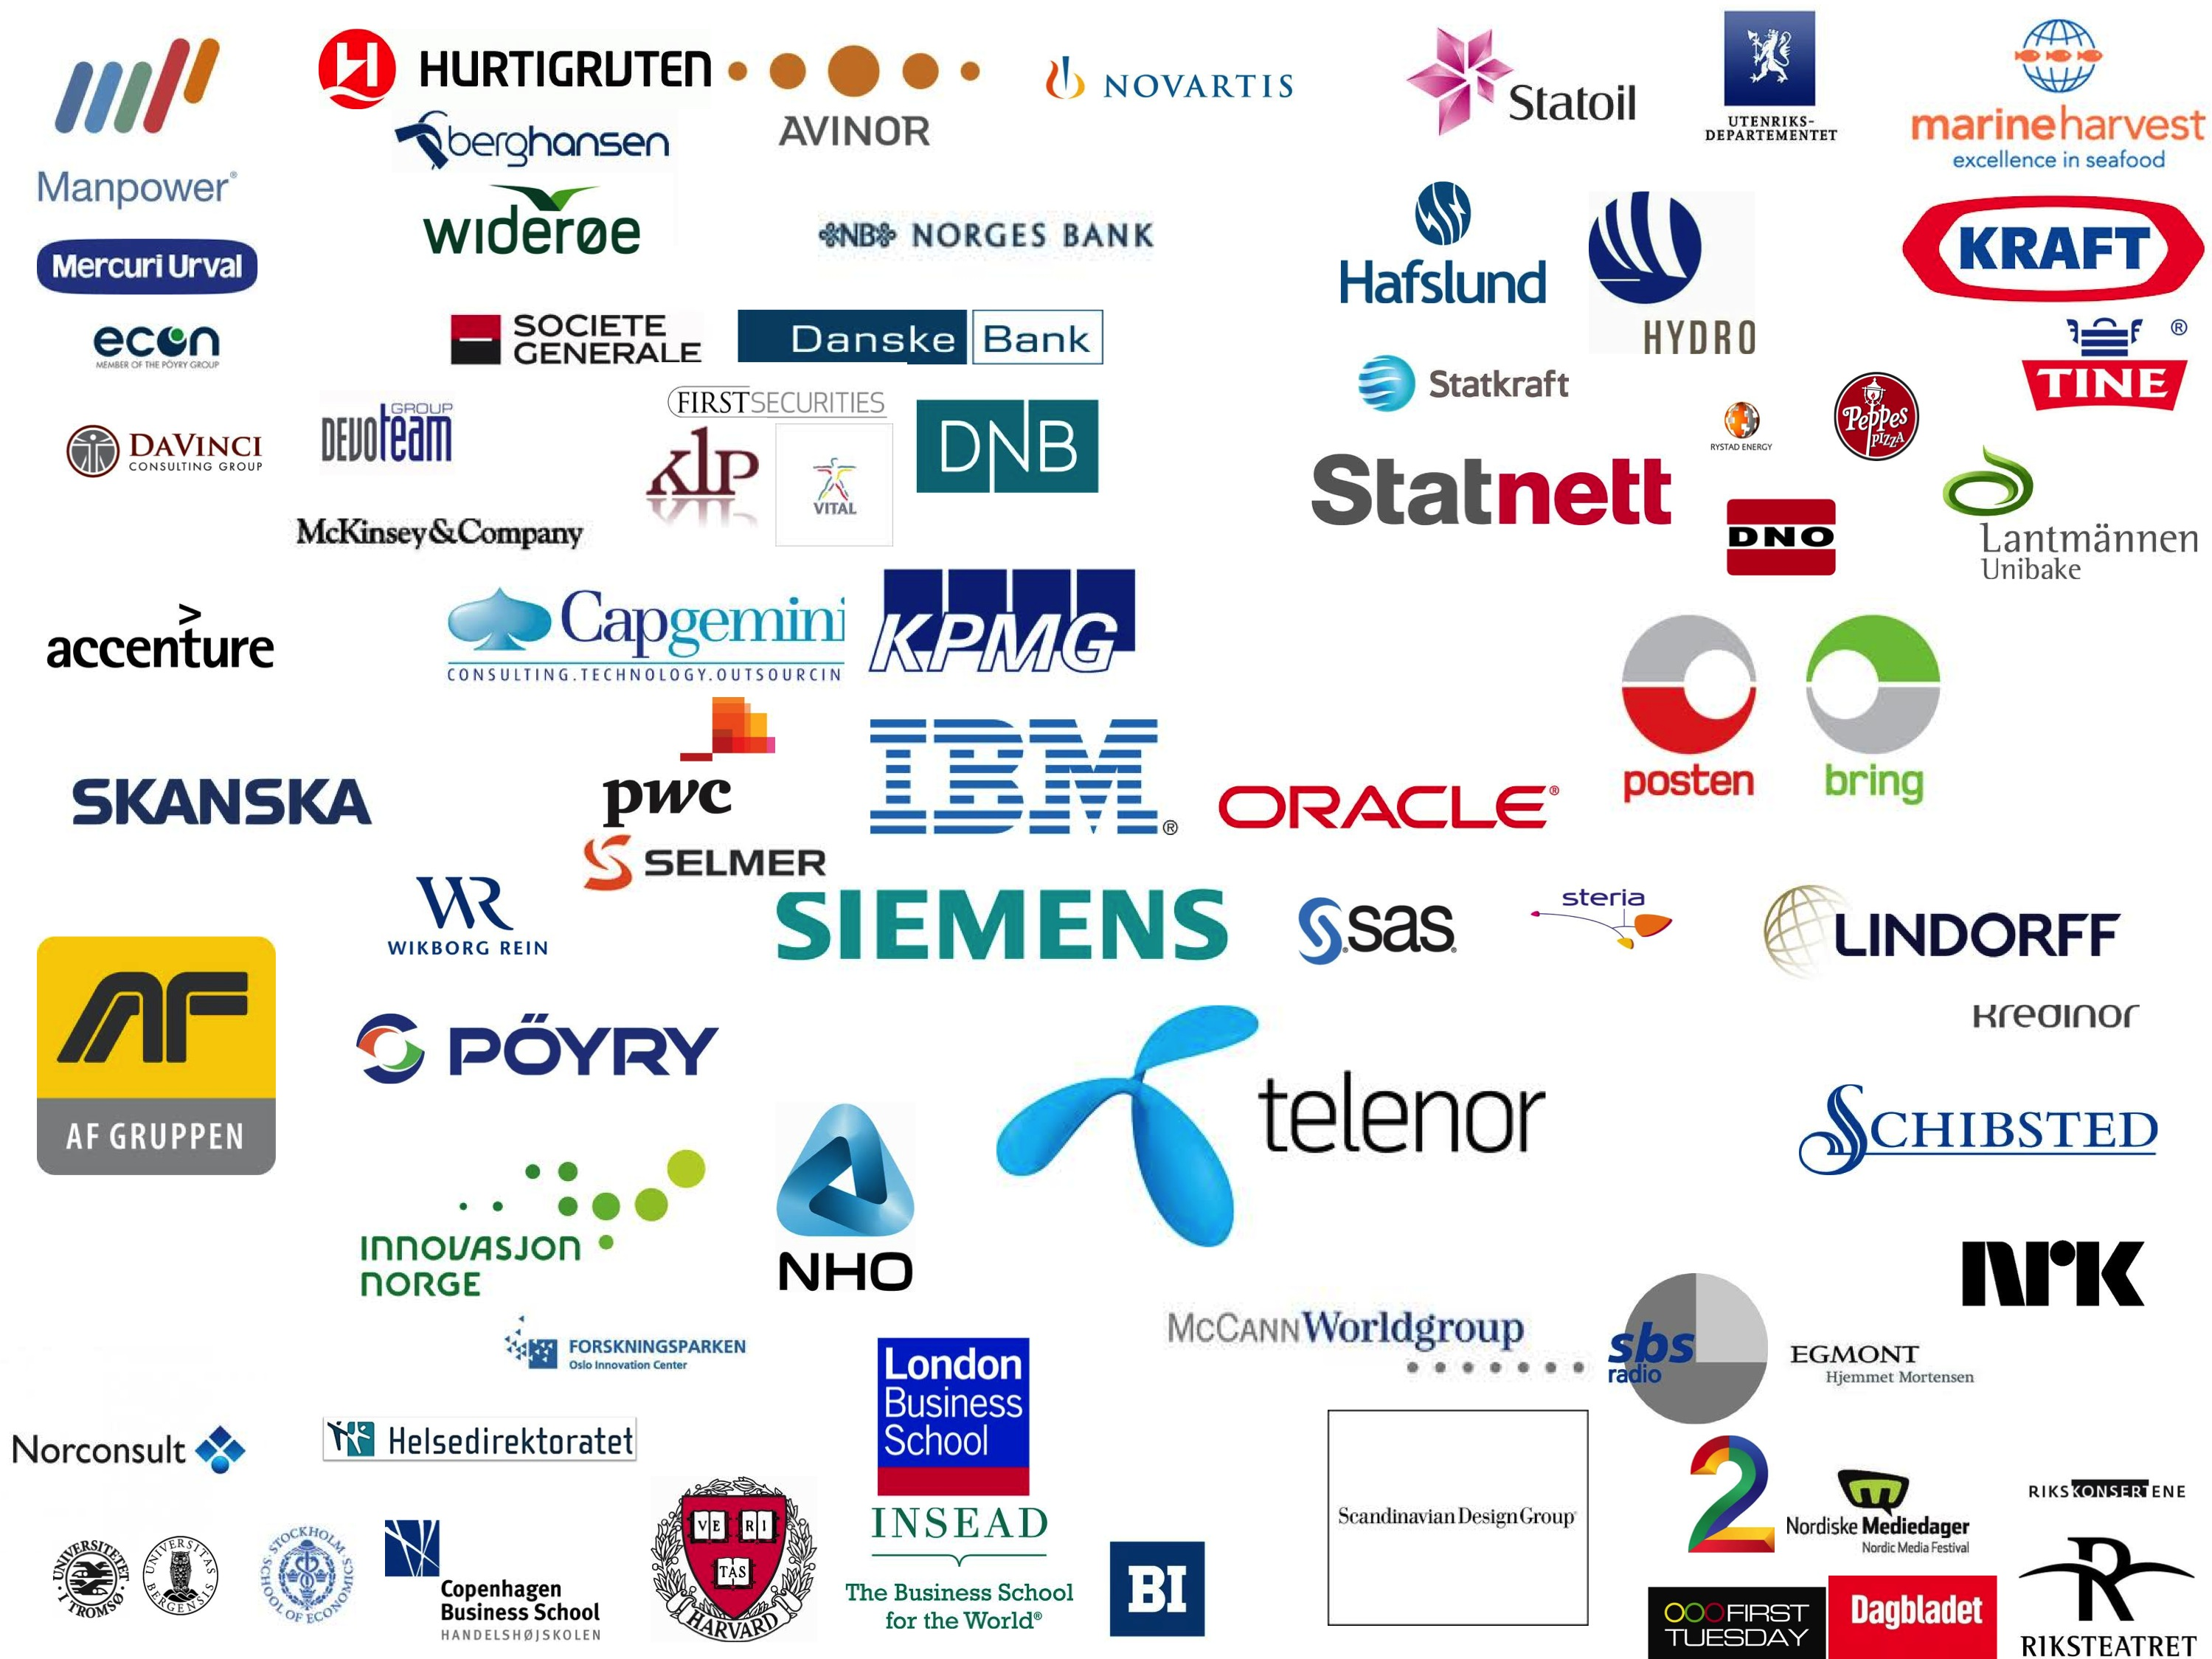 Partial list of Jazzcode´s clients in different sectors including telecom, consulting, financial, NGO´s, pharma, electronics, construction, media, academia, culture and energy